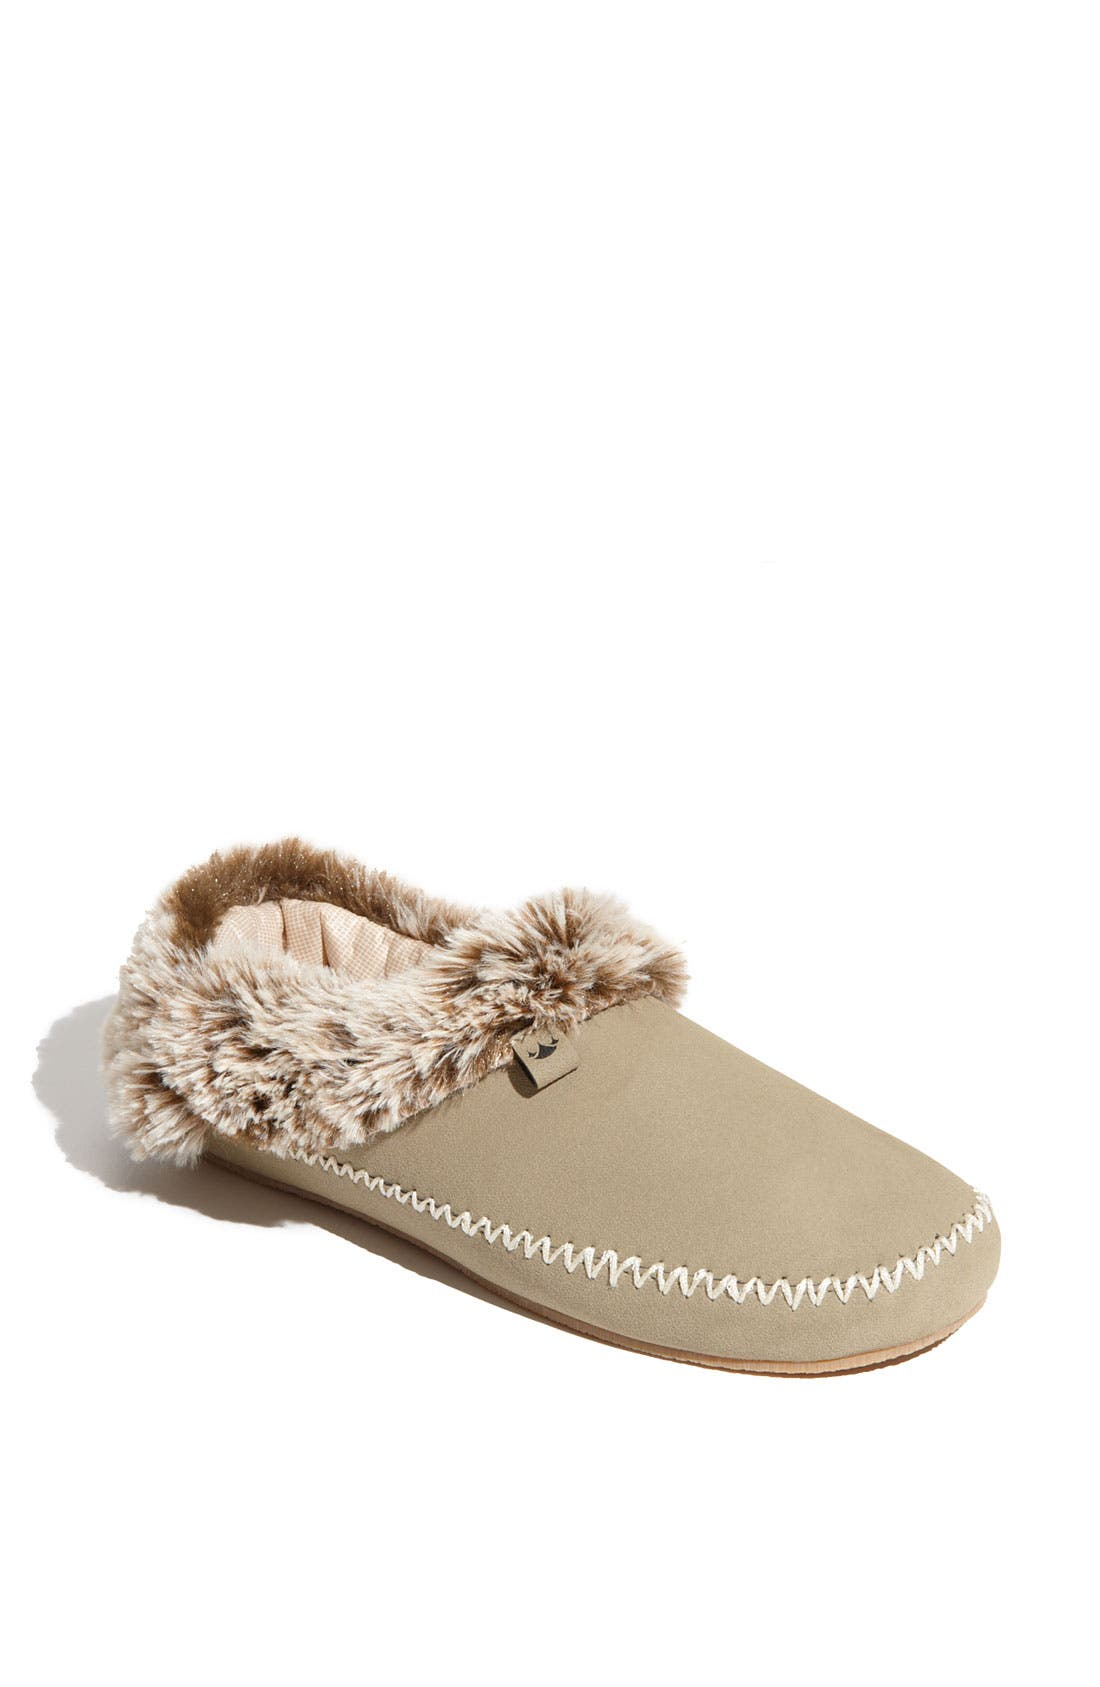 Alternate Image 1 Selected - Freewaters 'Cloudnine' Slipper